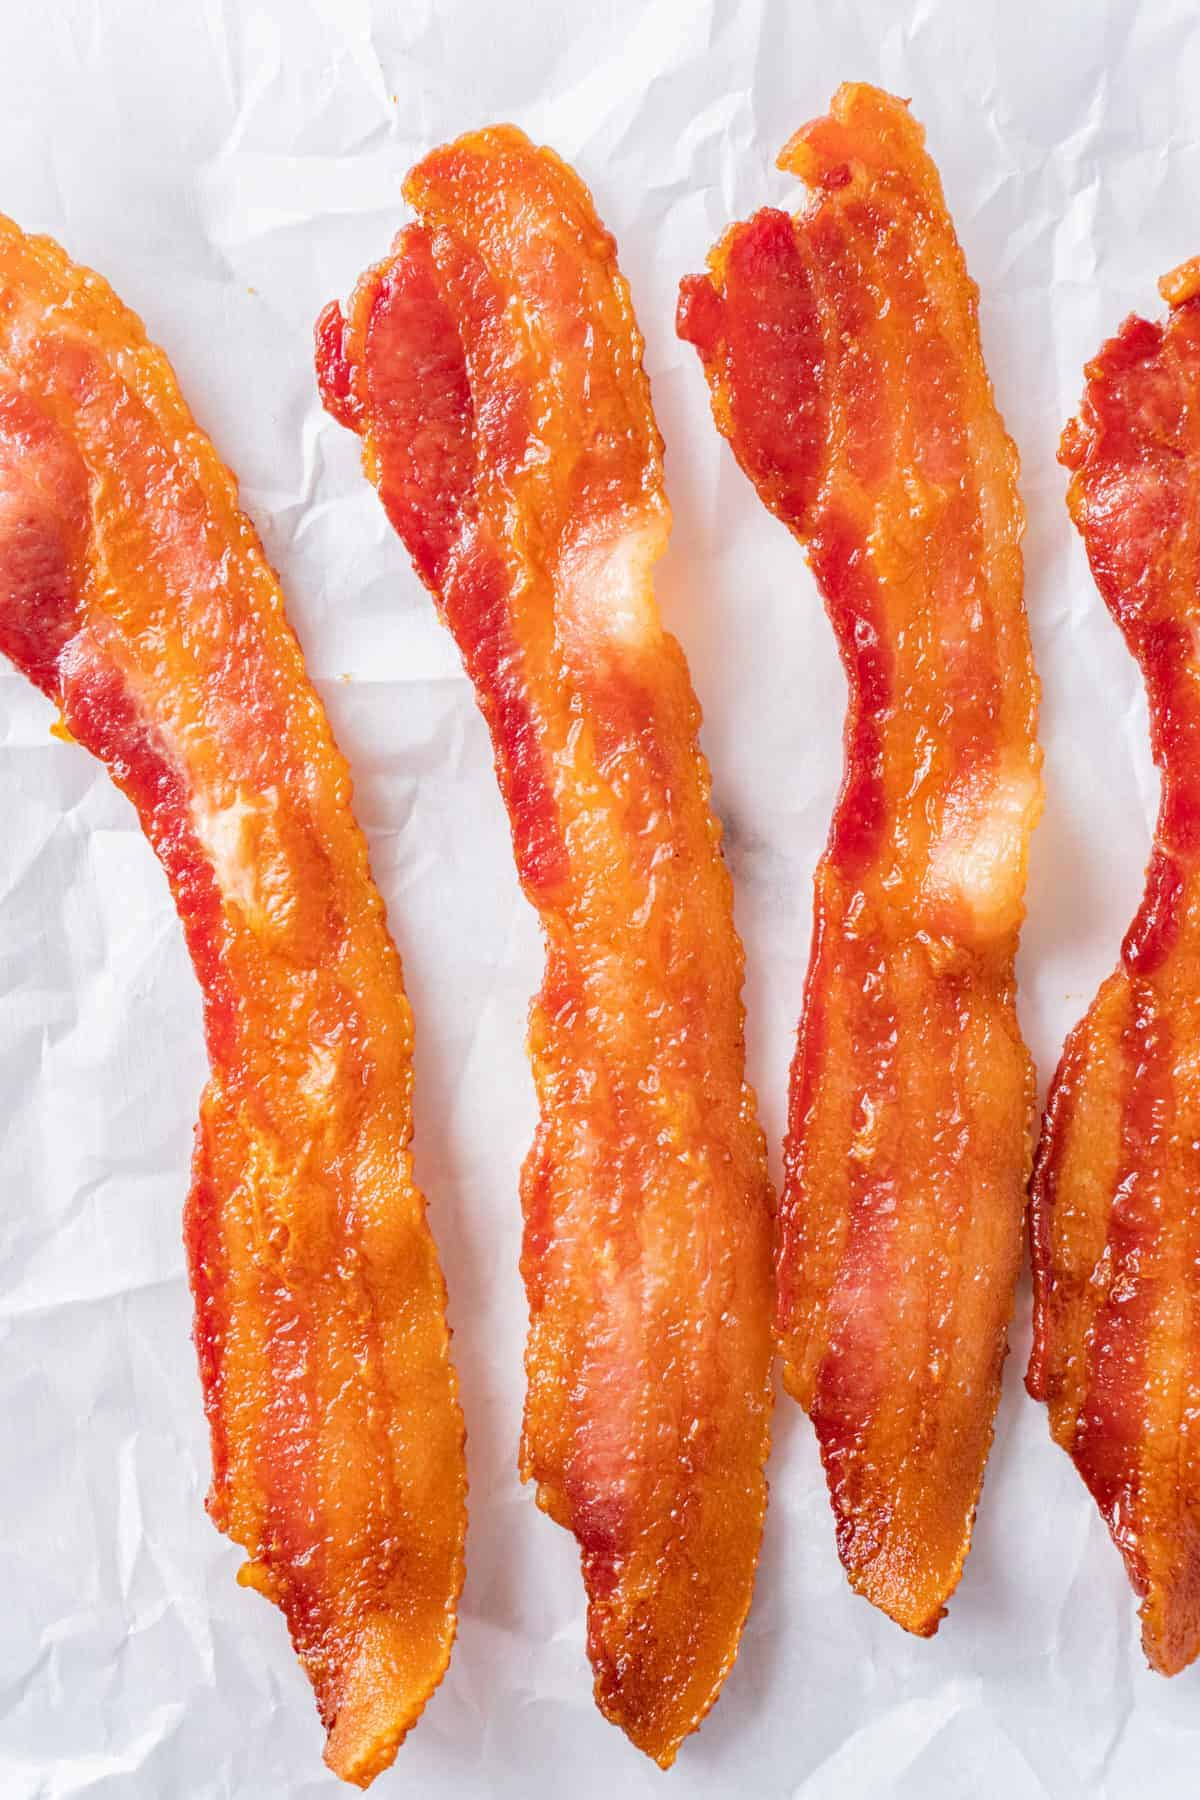 Golden Cooked Bacon on Parchment Paper